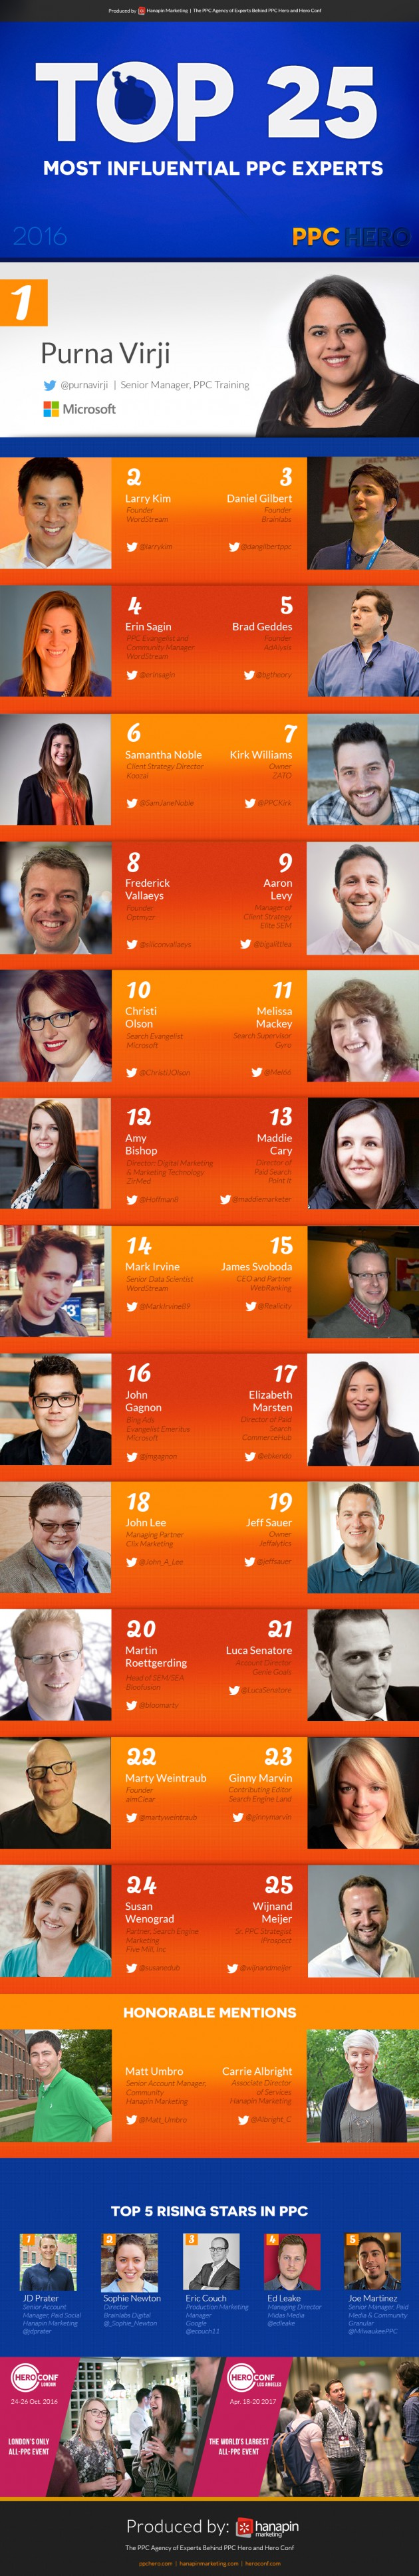 2016 Top 25 Most Influential PPC Experts